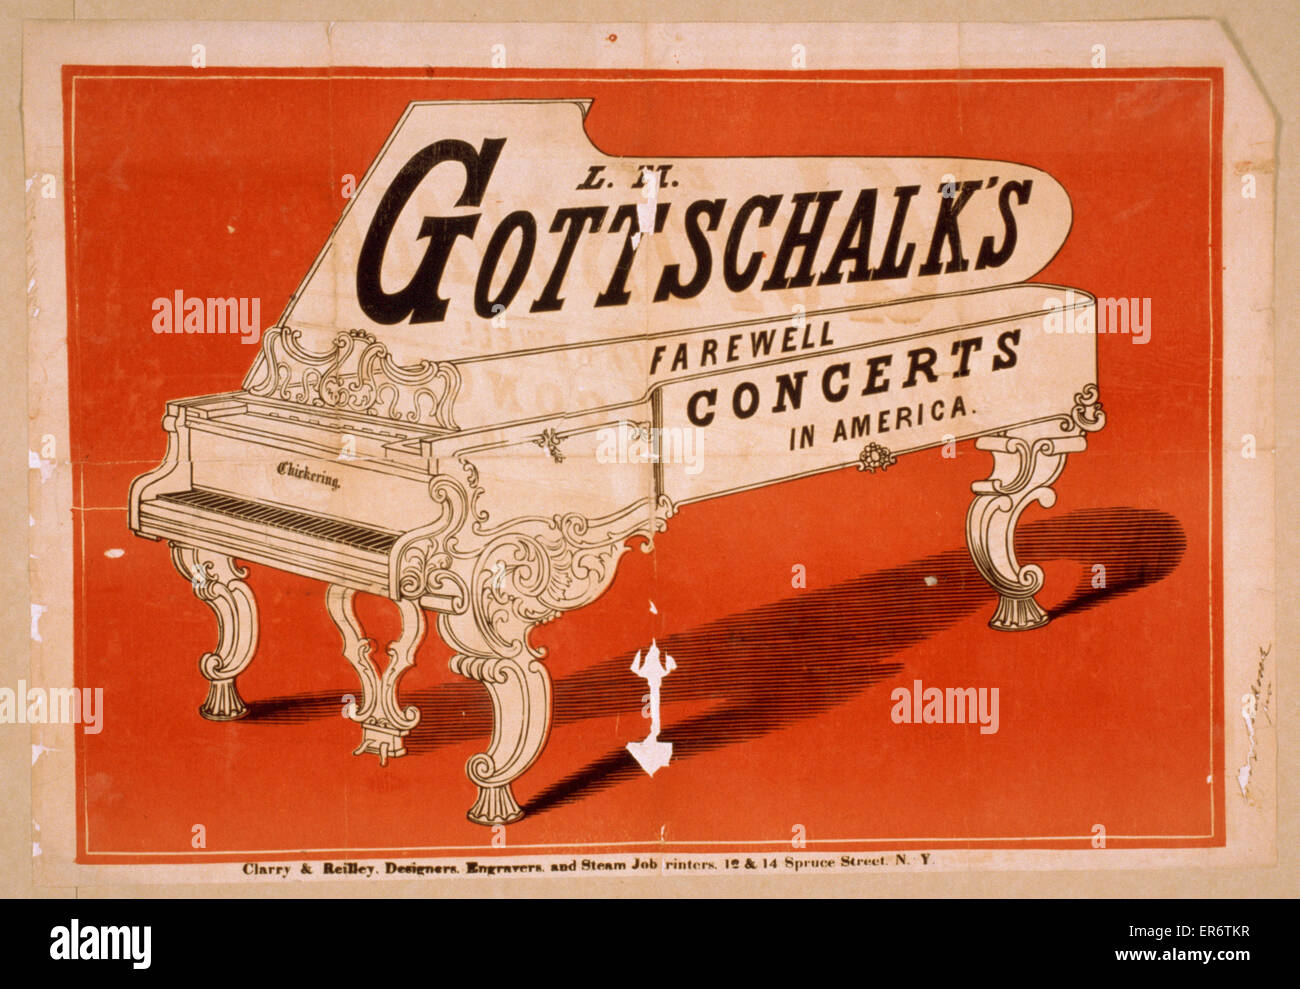 LM Gottschalk's farewell concerts in America. Date 186-?. - Stock Image